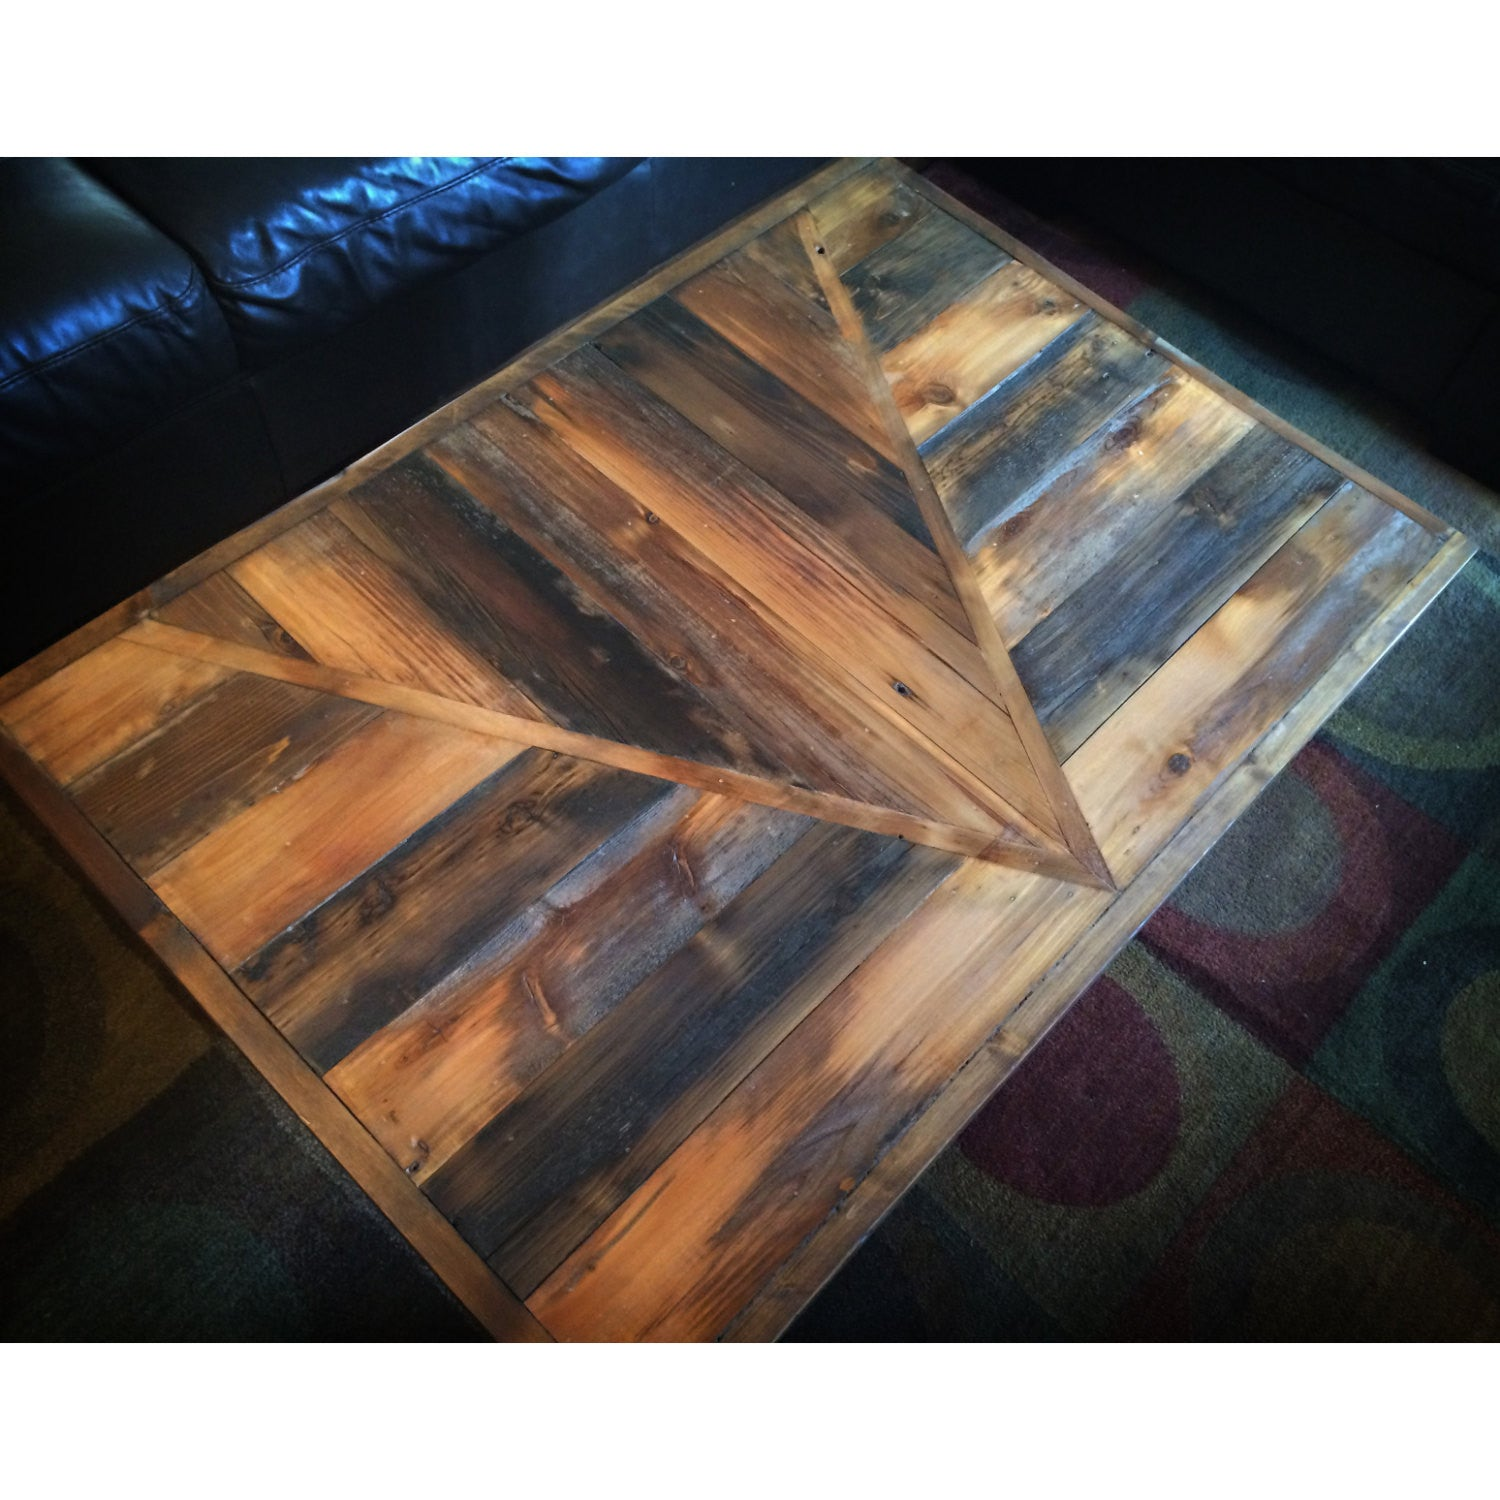 Reclaimed Wood Coffee Table | The Chalet Table | Geometric Modern Design | Refined Rustic Oak Coffee Table | Made To Order in Custom Colors